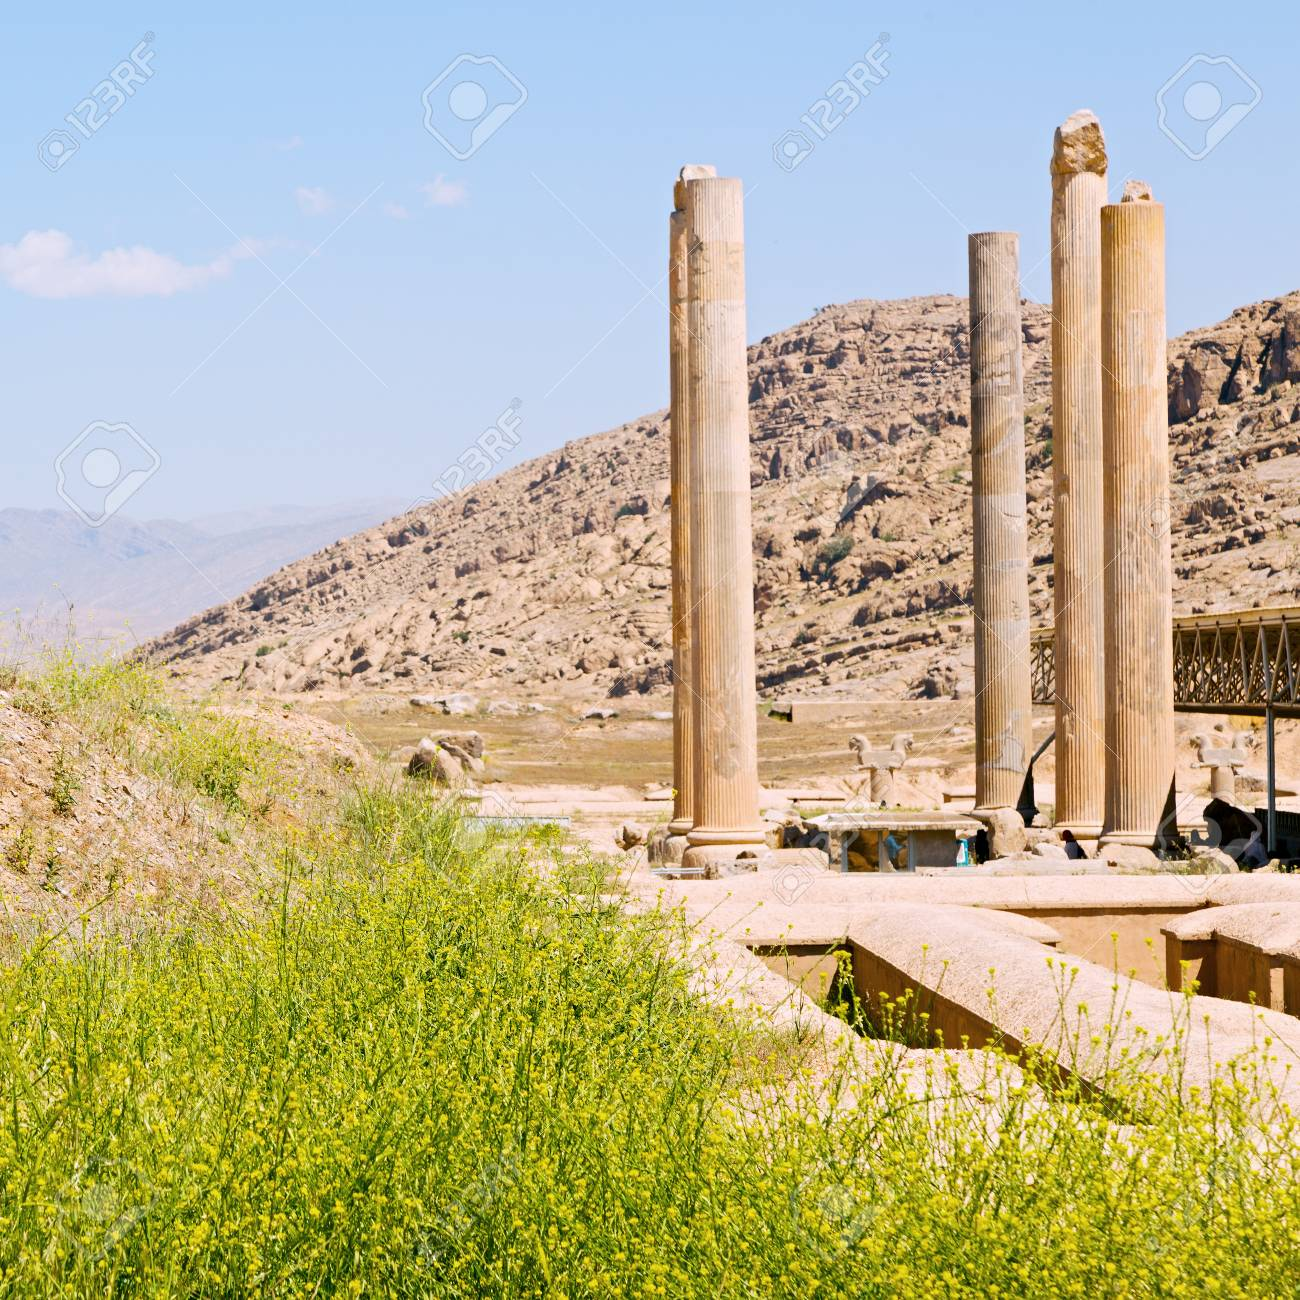 In Iran Persepolis The Old Ruins Historical Destination Monuments Stock Photo Picture And Royalty Free Image Image 65401359